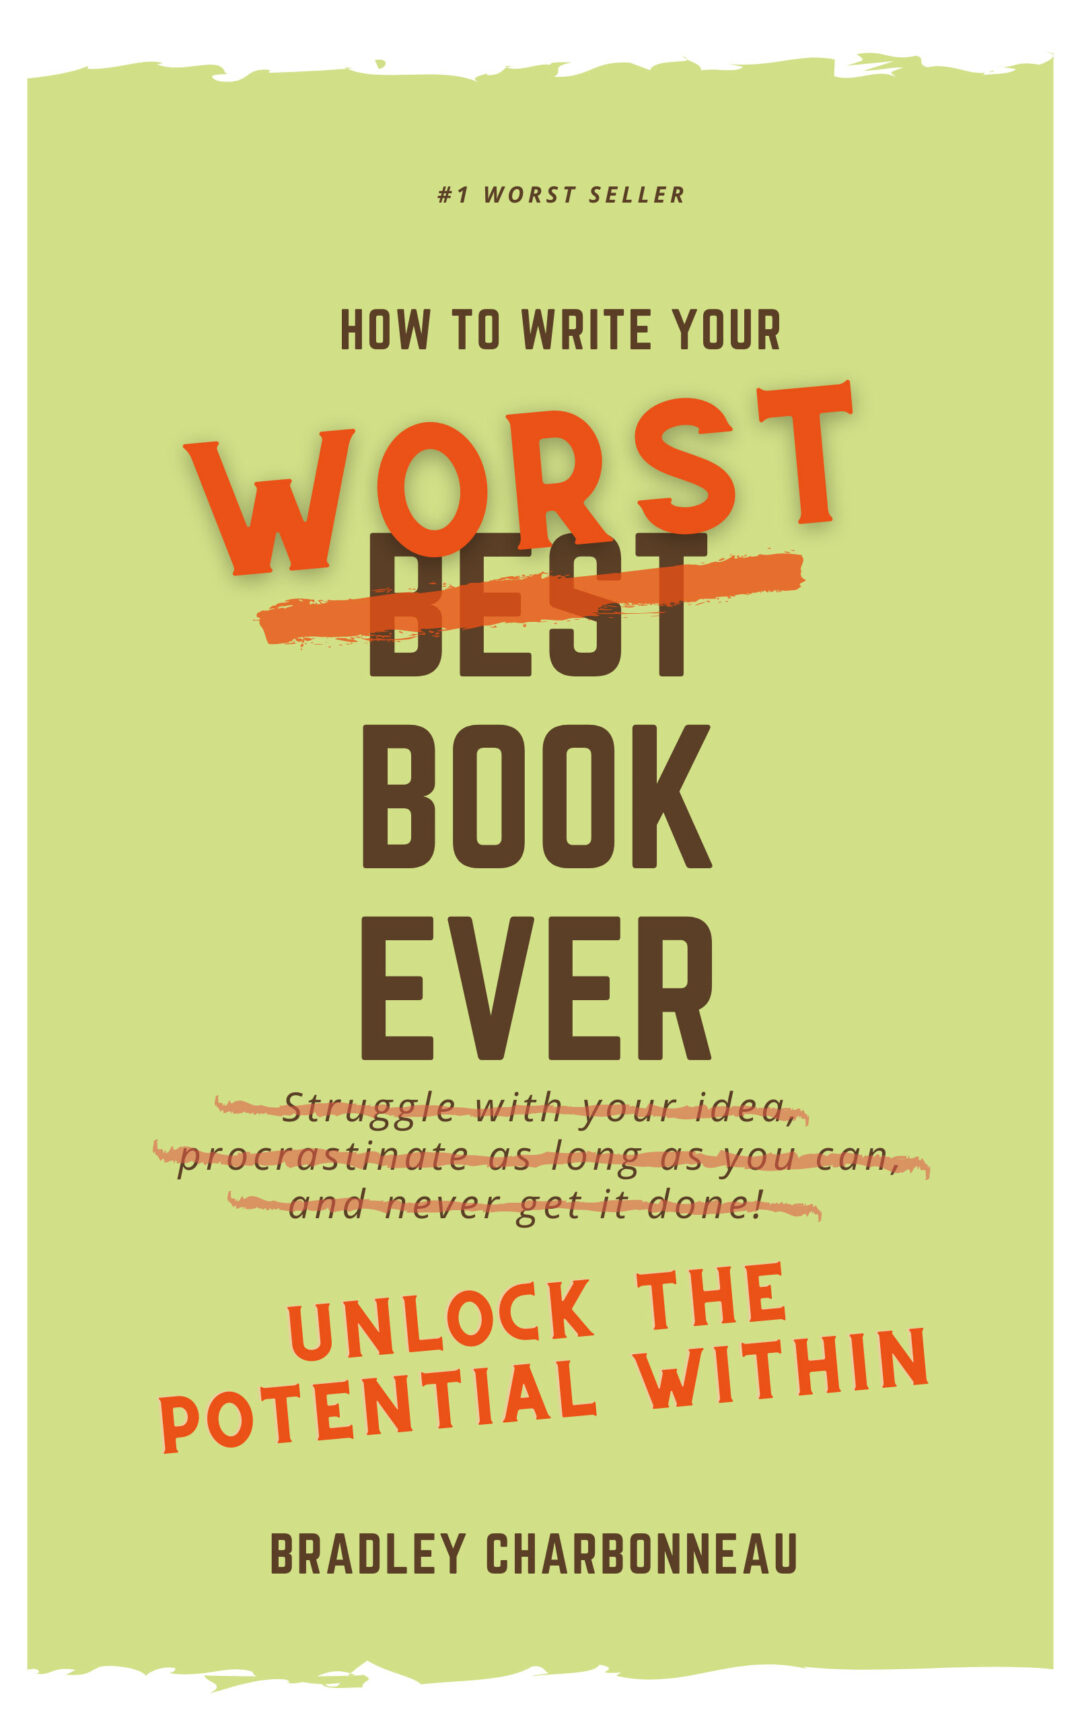 How to Write Your Worst Book Ever